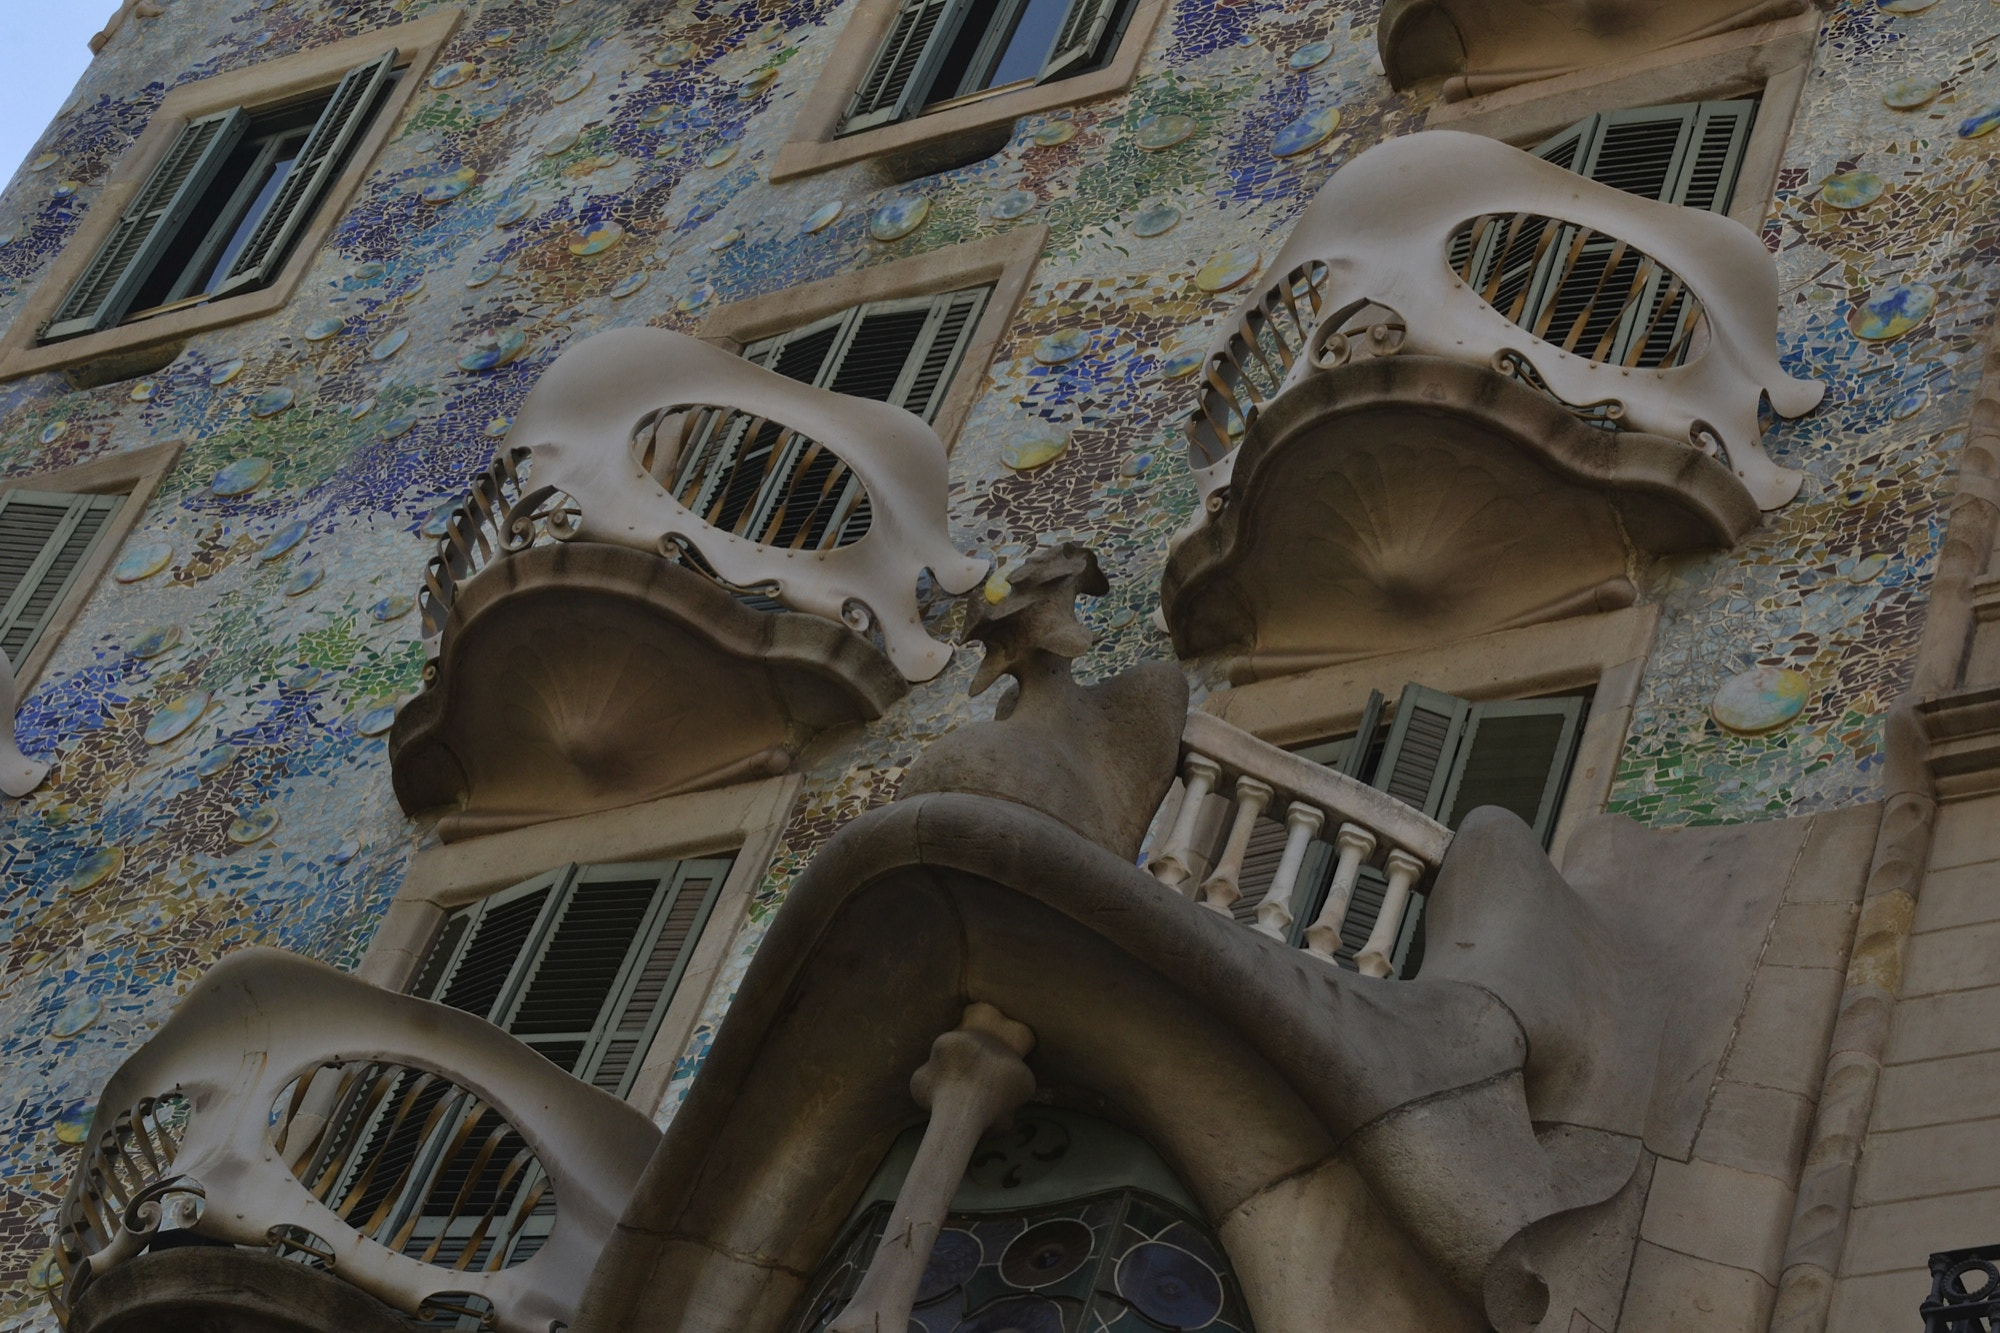 Photograph gaudi gaudy by terry vick on 500px